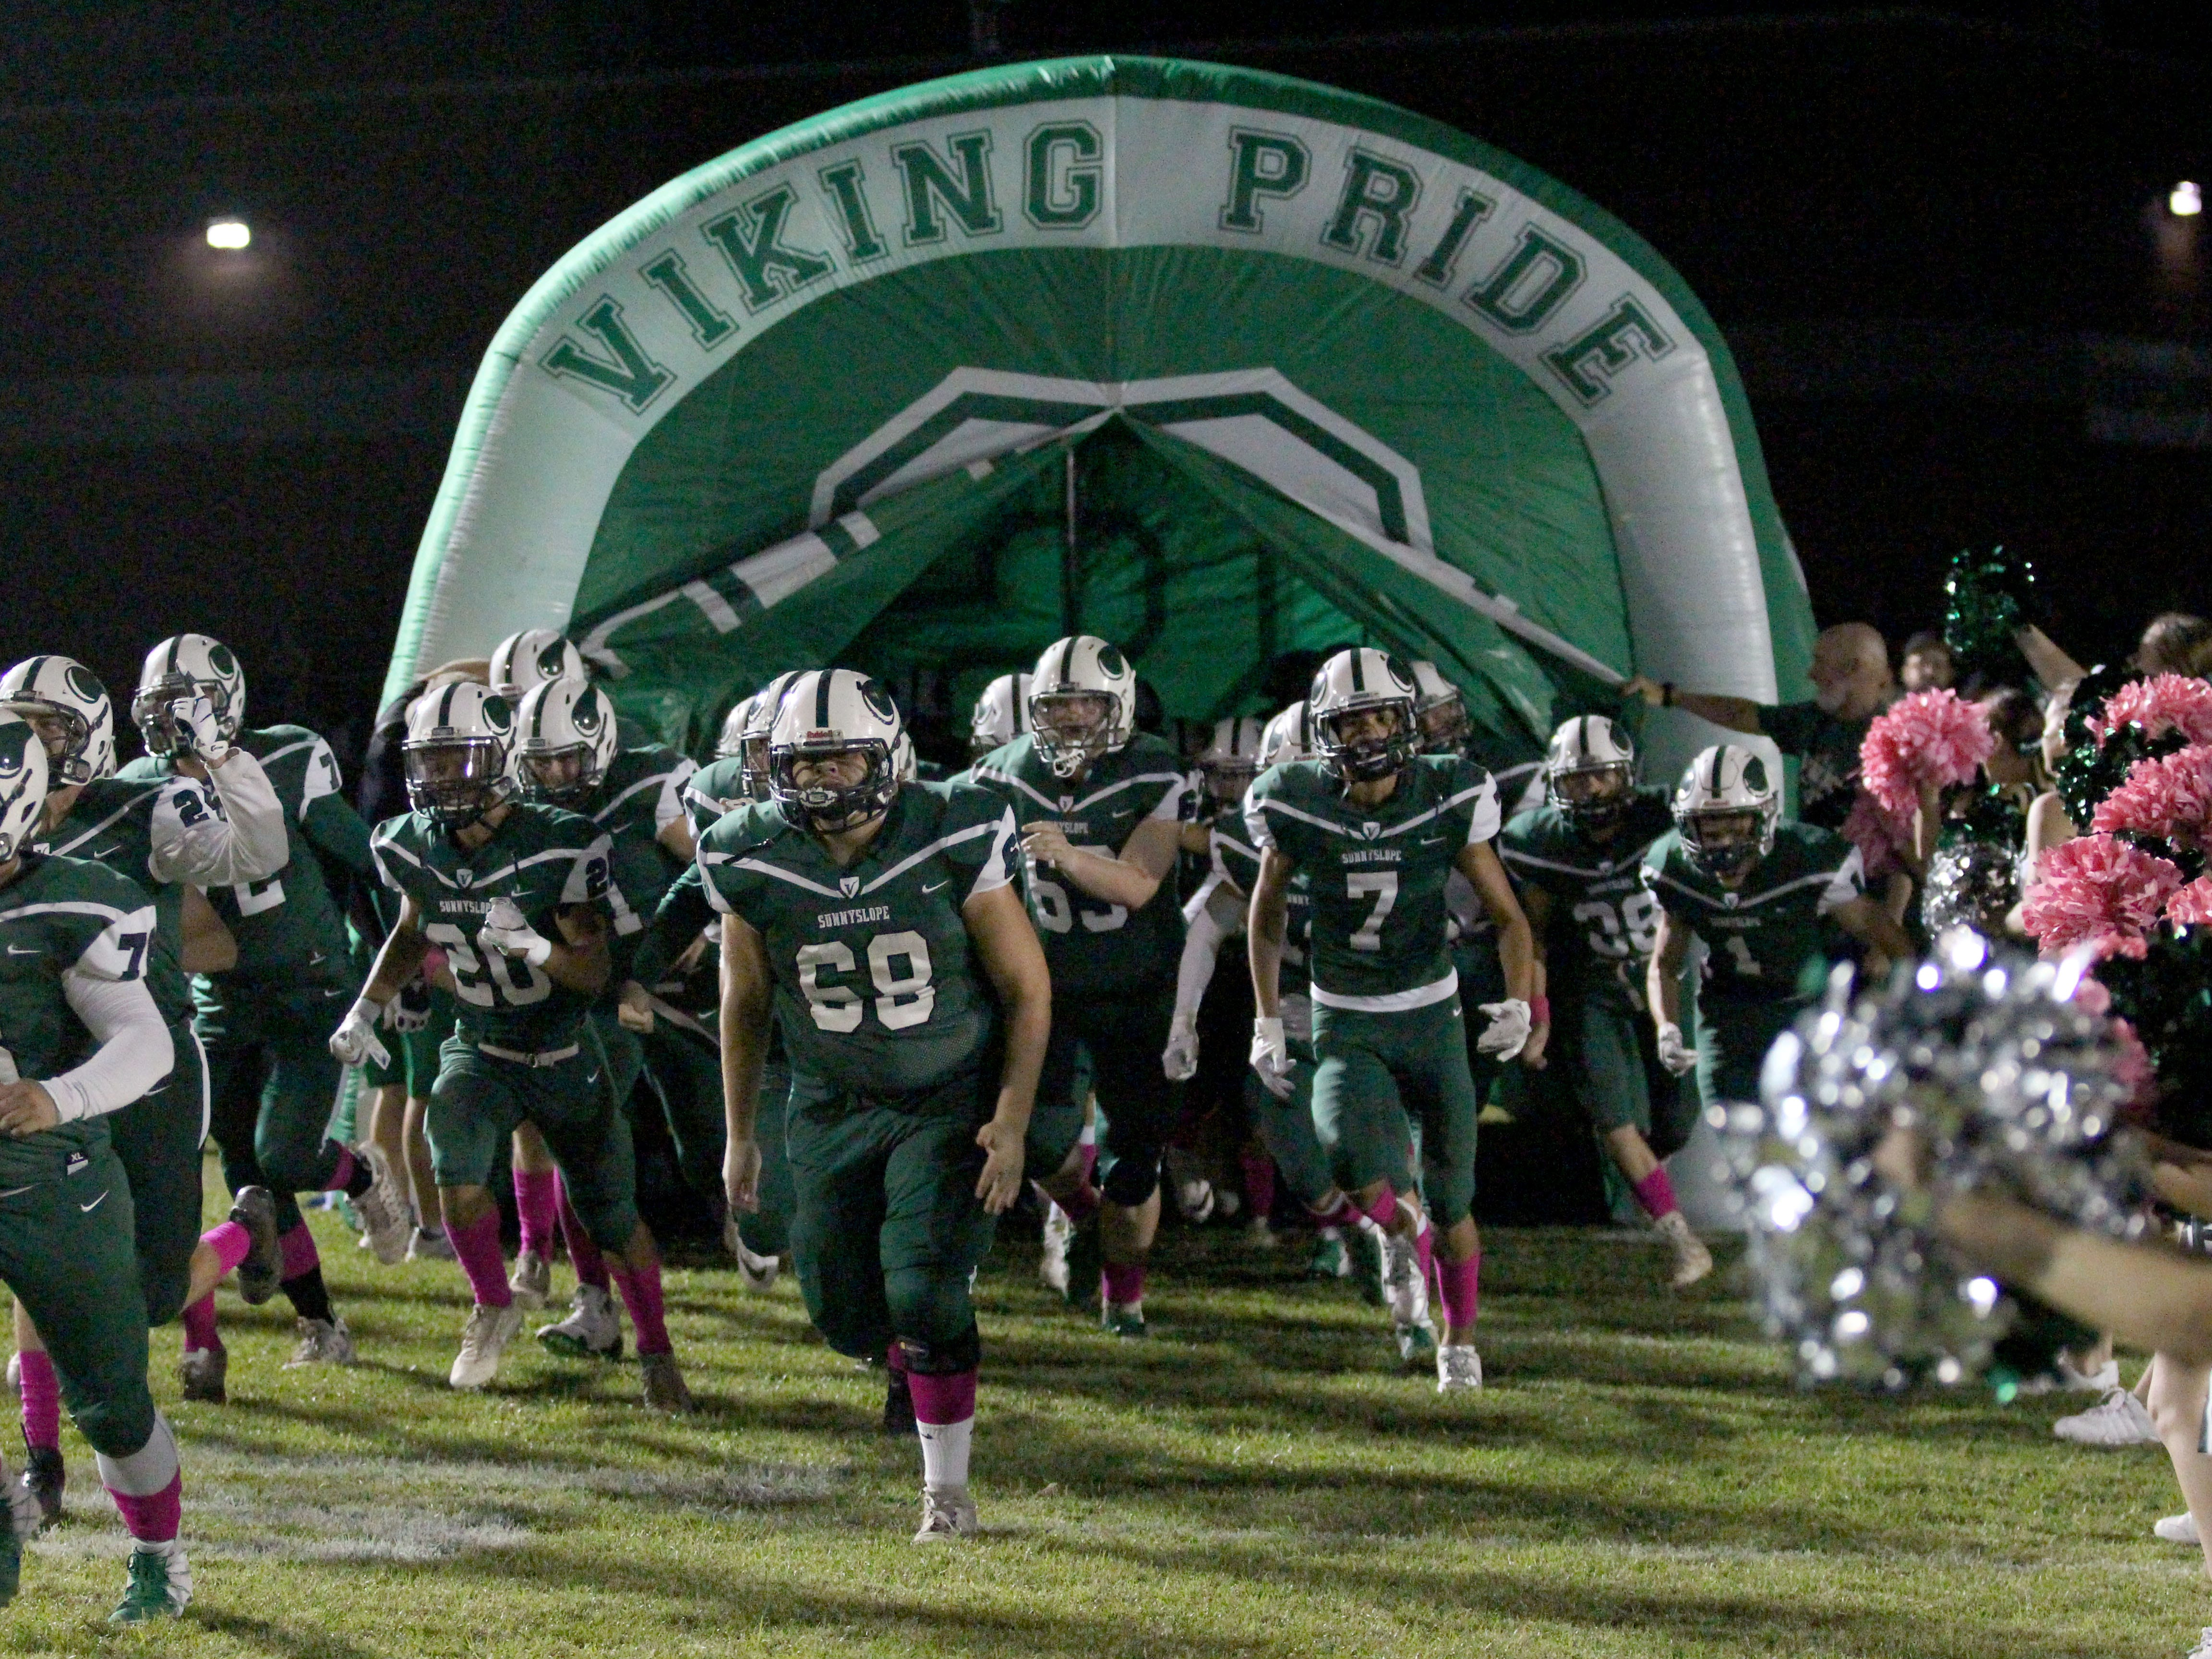 Sunnyslope takes the field before its game against Centennial on Friday night at Sunnyslope High School on Oct. 5, 2018